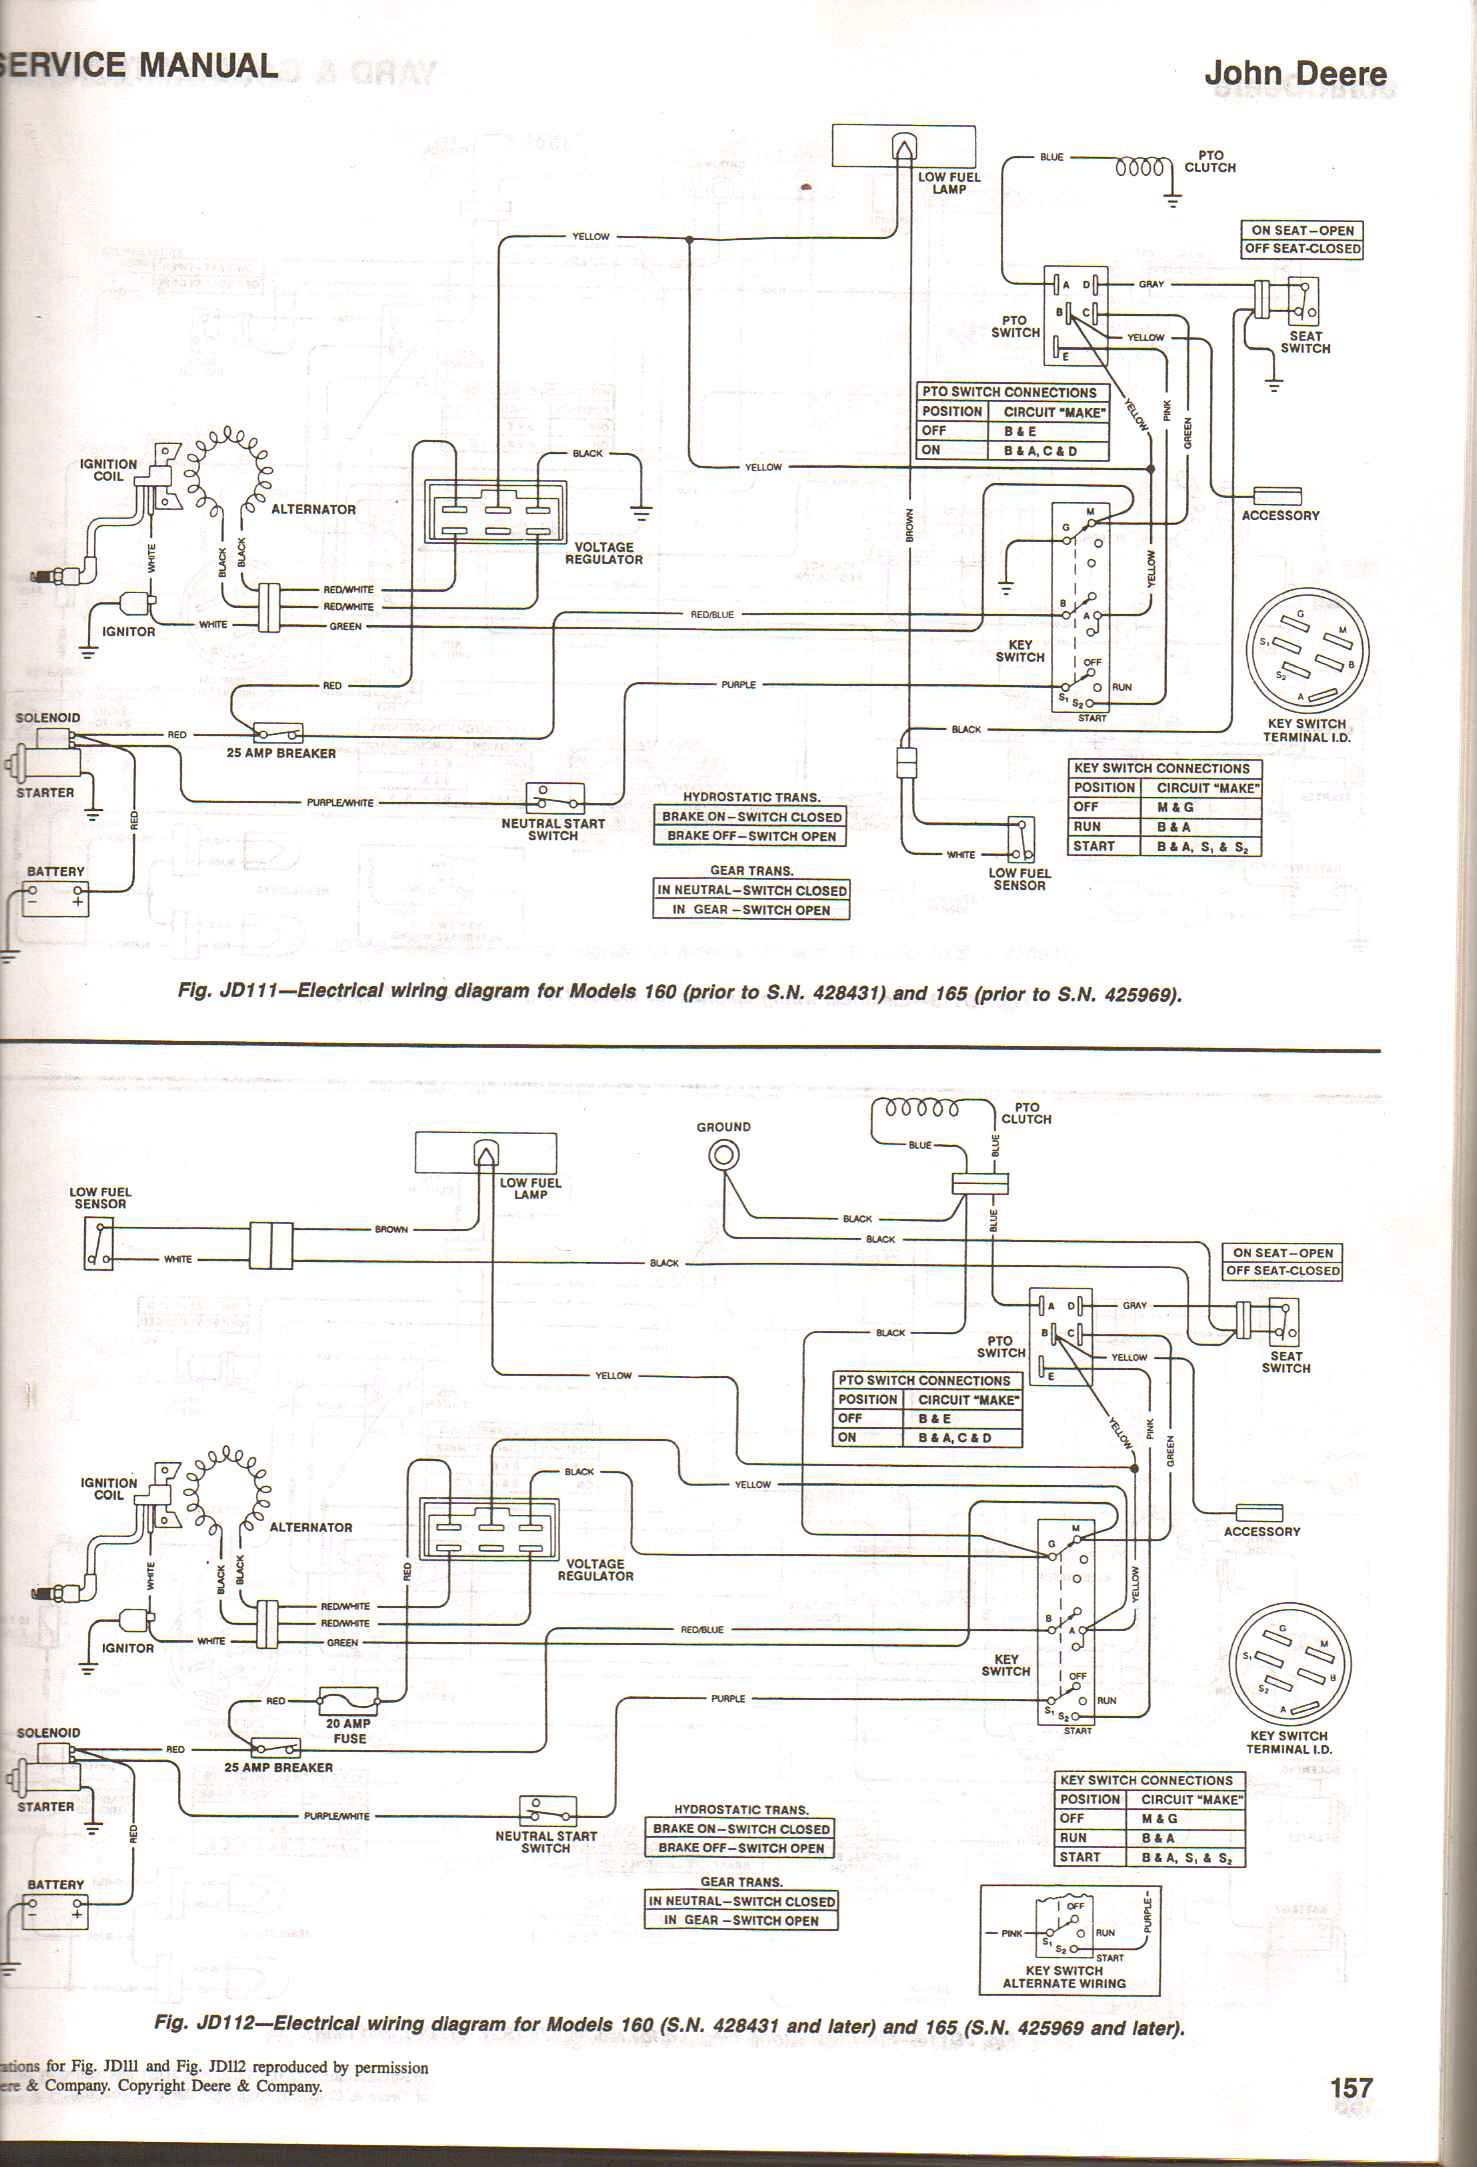 John Deere 325 Lawn Tractor Wiring Diagram Trusted Basic 165 Guide Generator I